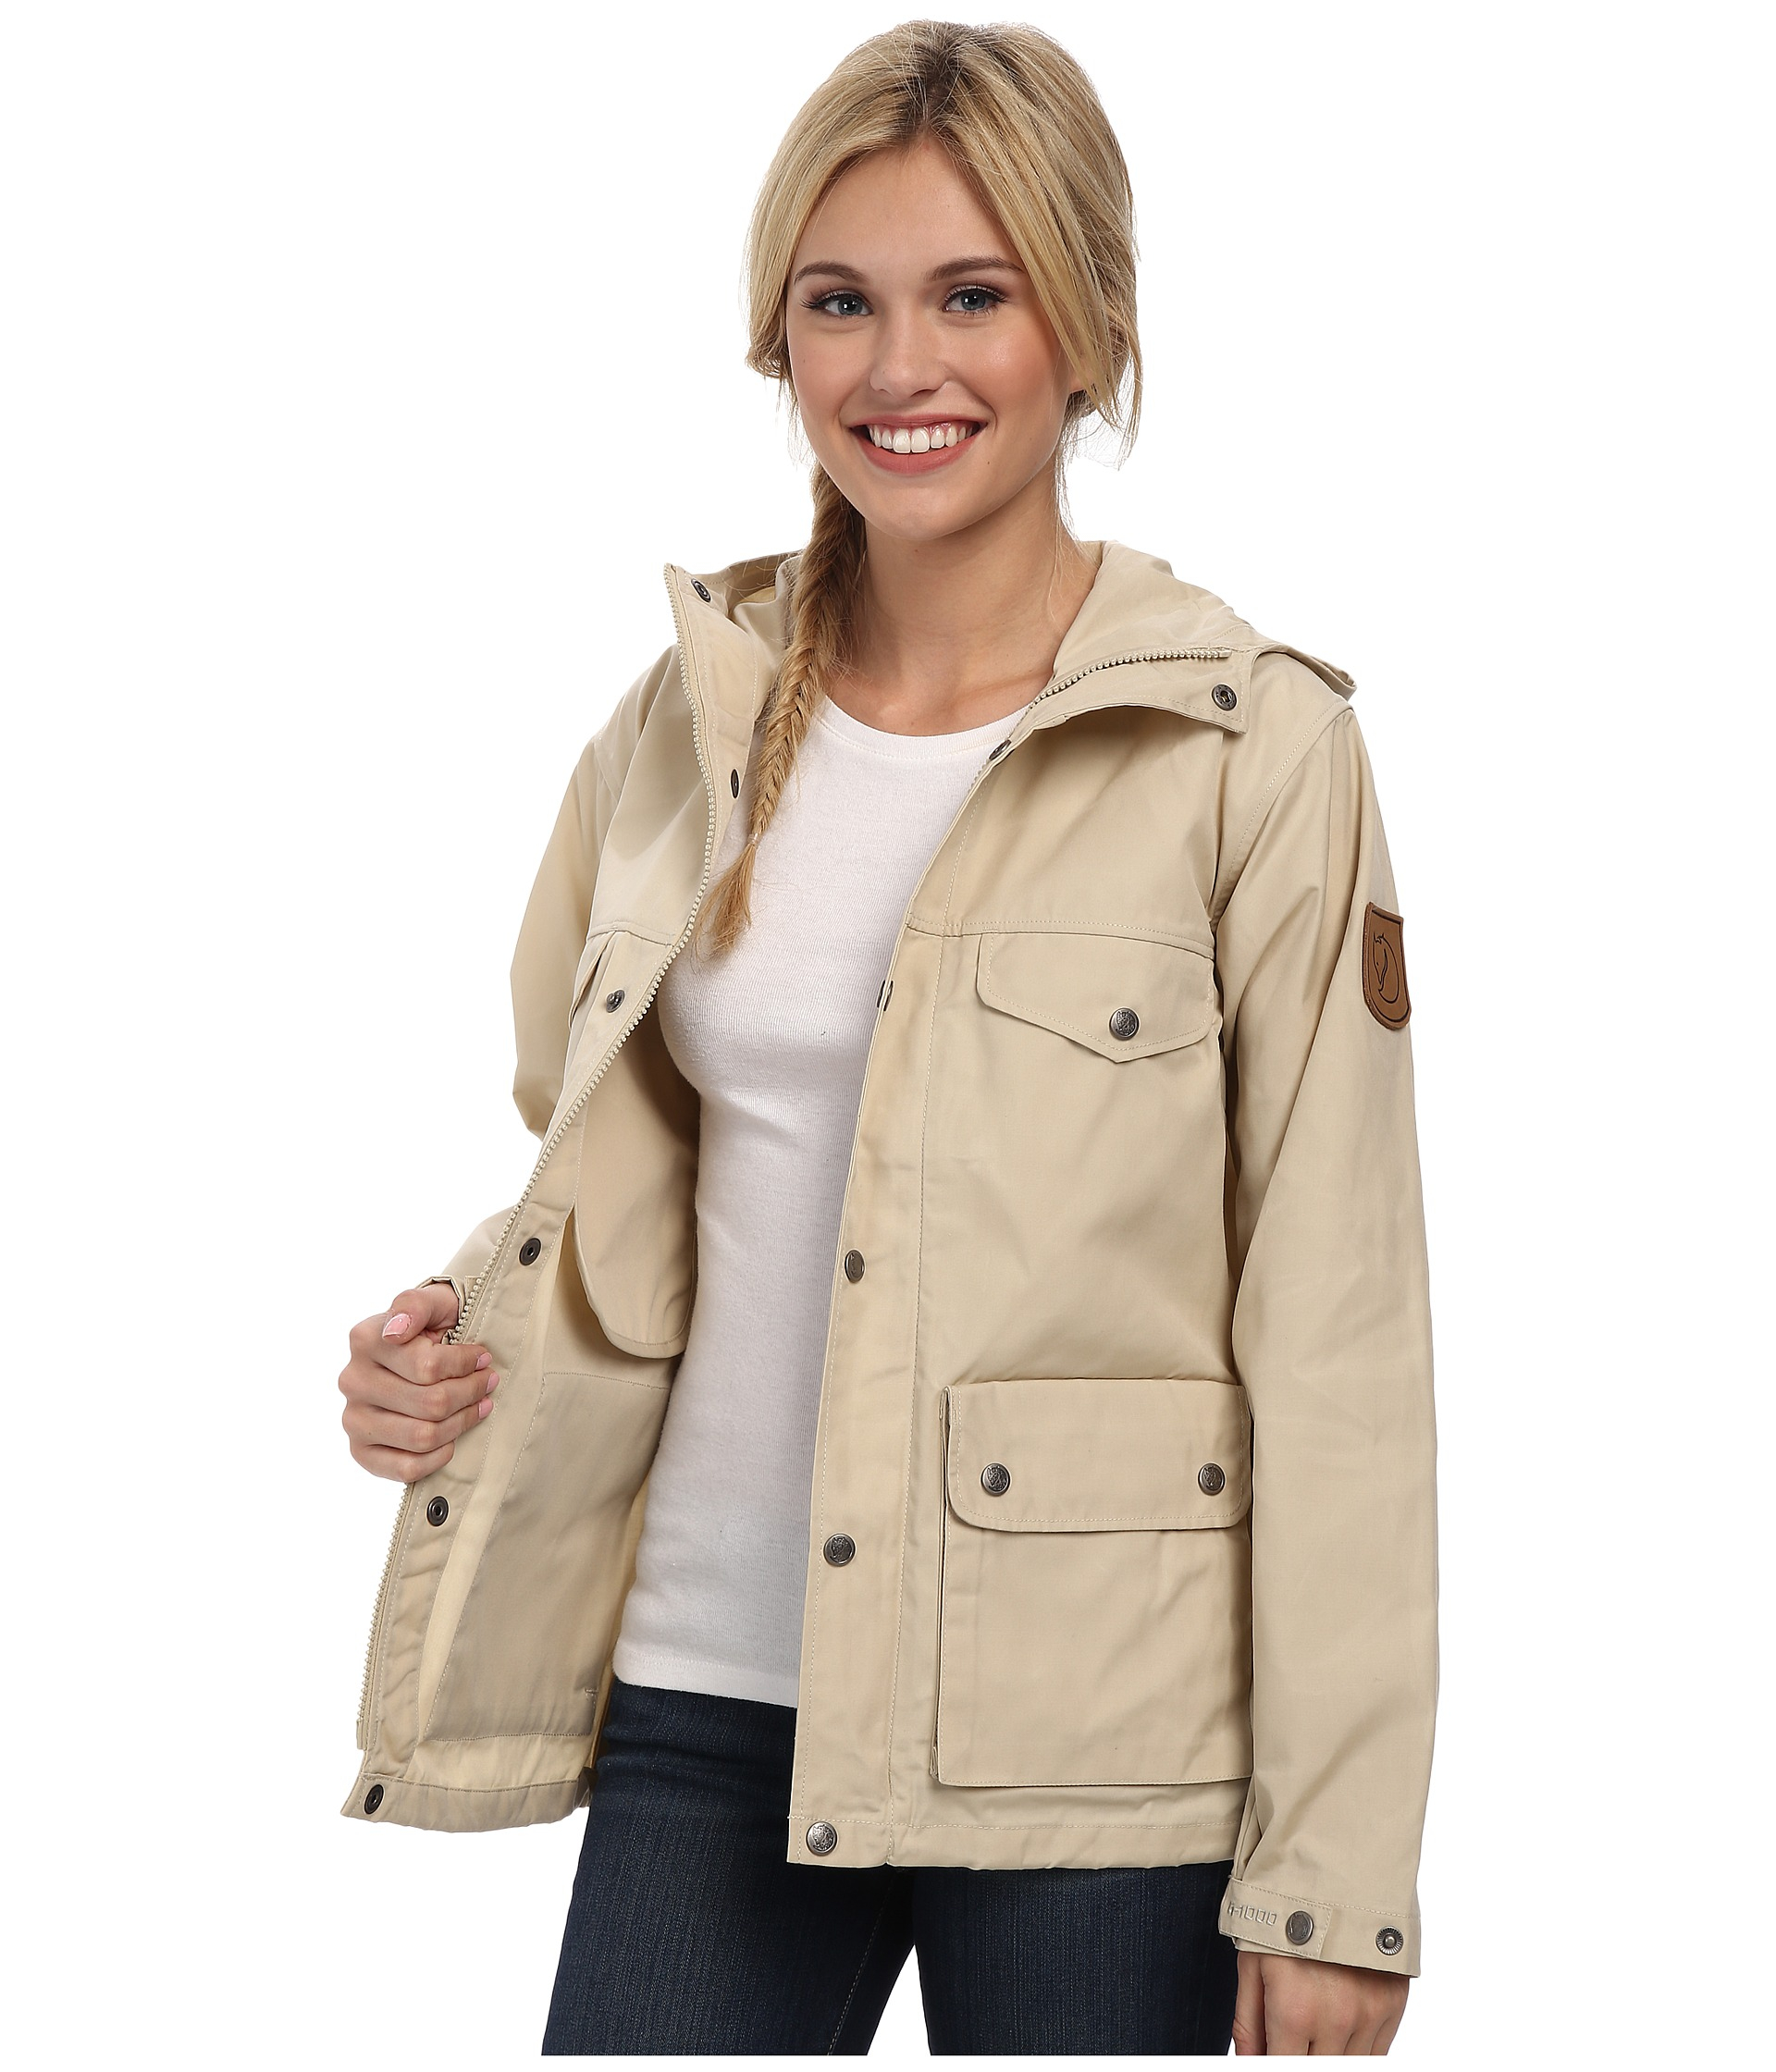 finest selection 5ca2f 0eb0f Fjallraven Greenland Jacket in Light Beige (Natural) - Lyst